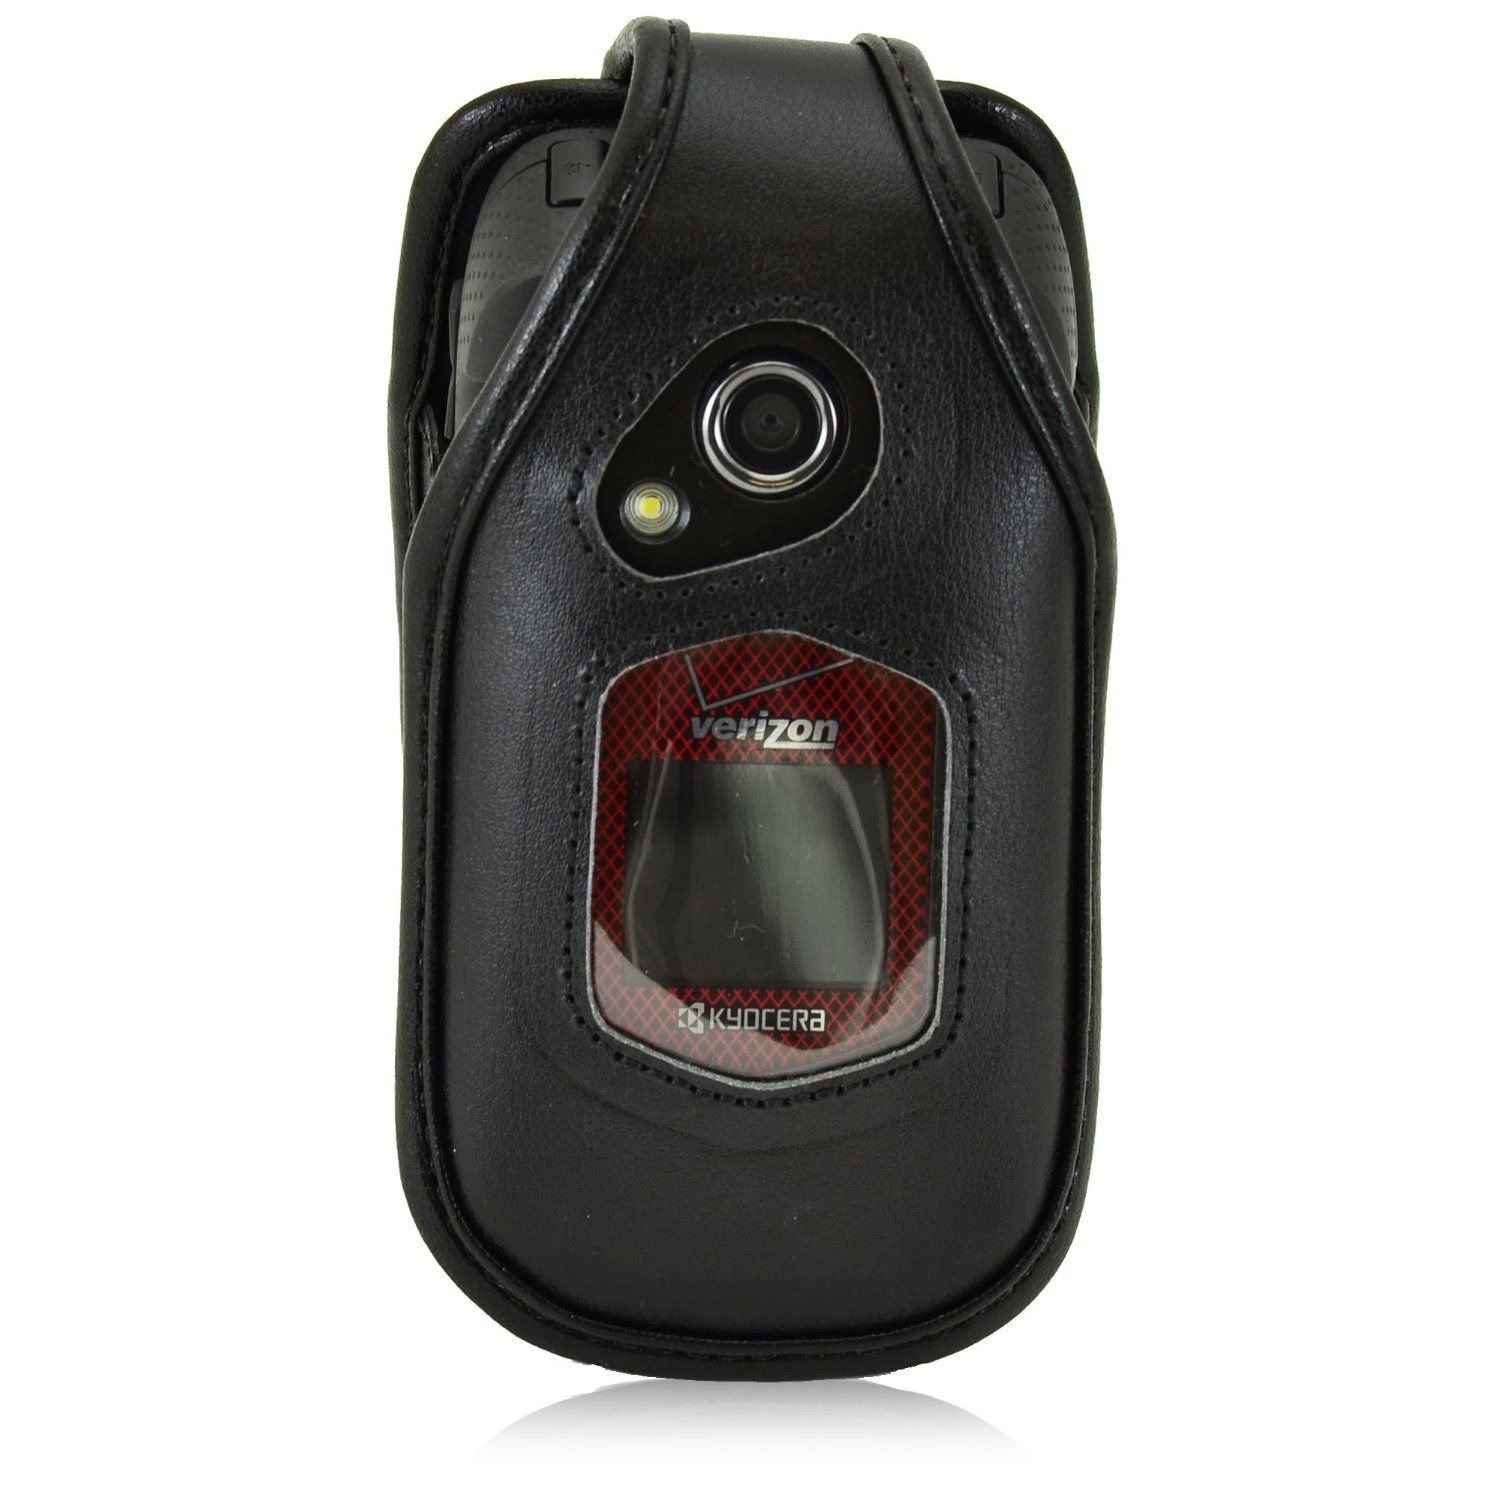 Turtleback Fitted Case for Kyocera DuraXV Flip Phone Black Leather Rotating Remo image 9